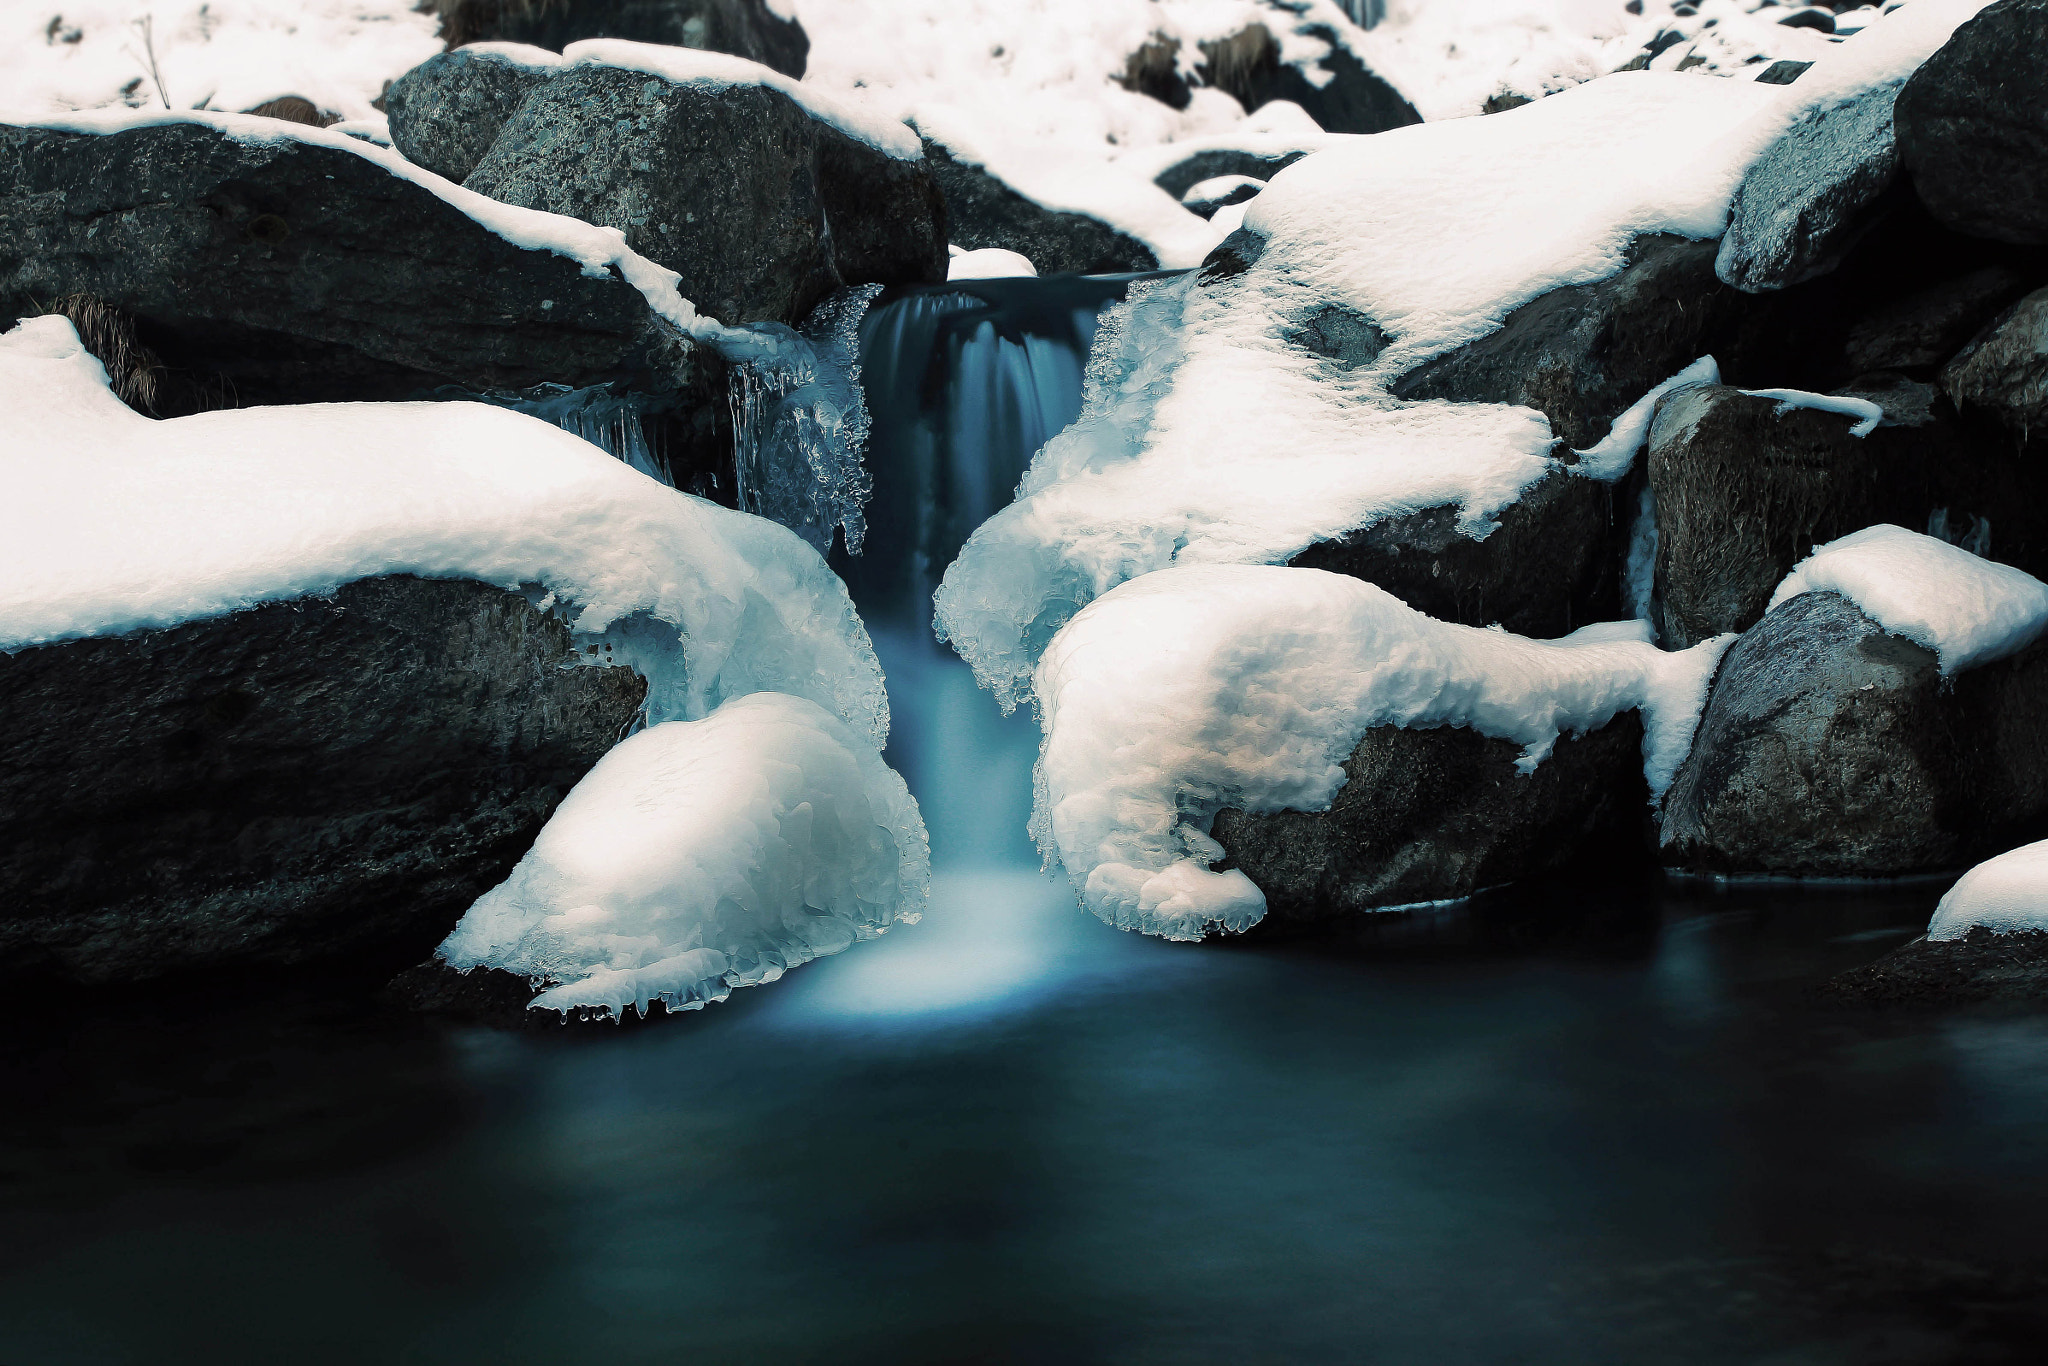 Photograph Ice Waterfall by Giamma Broilo on 500px